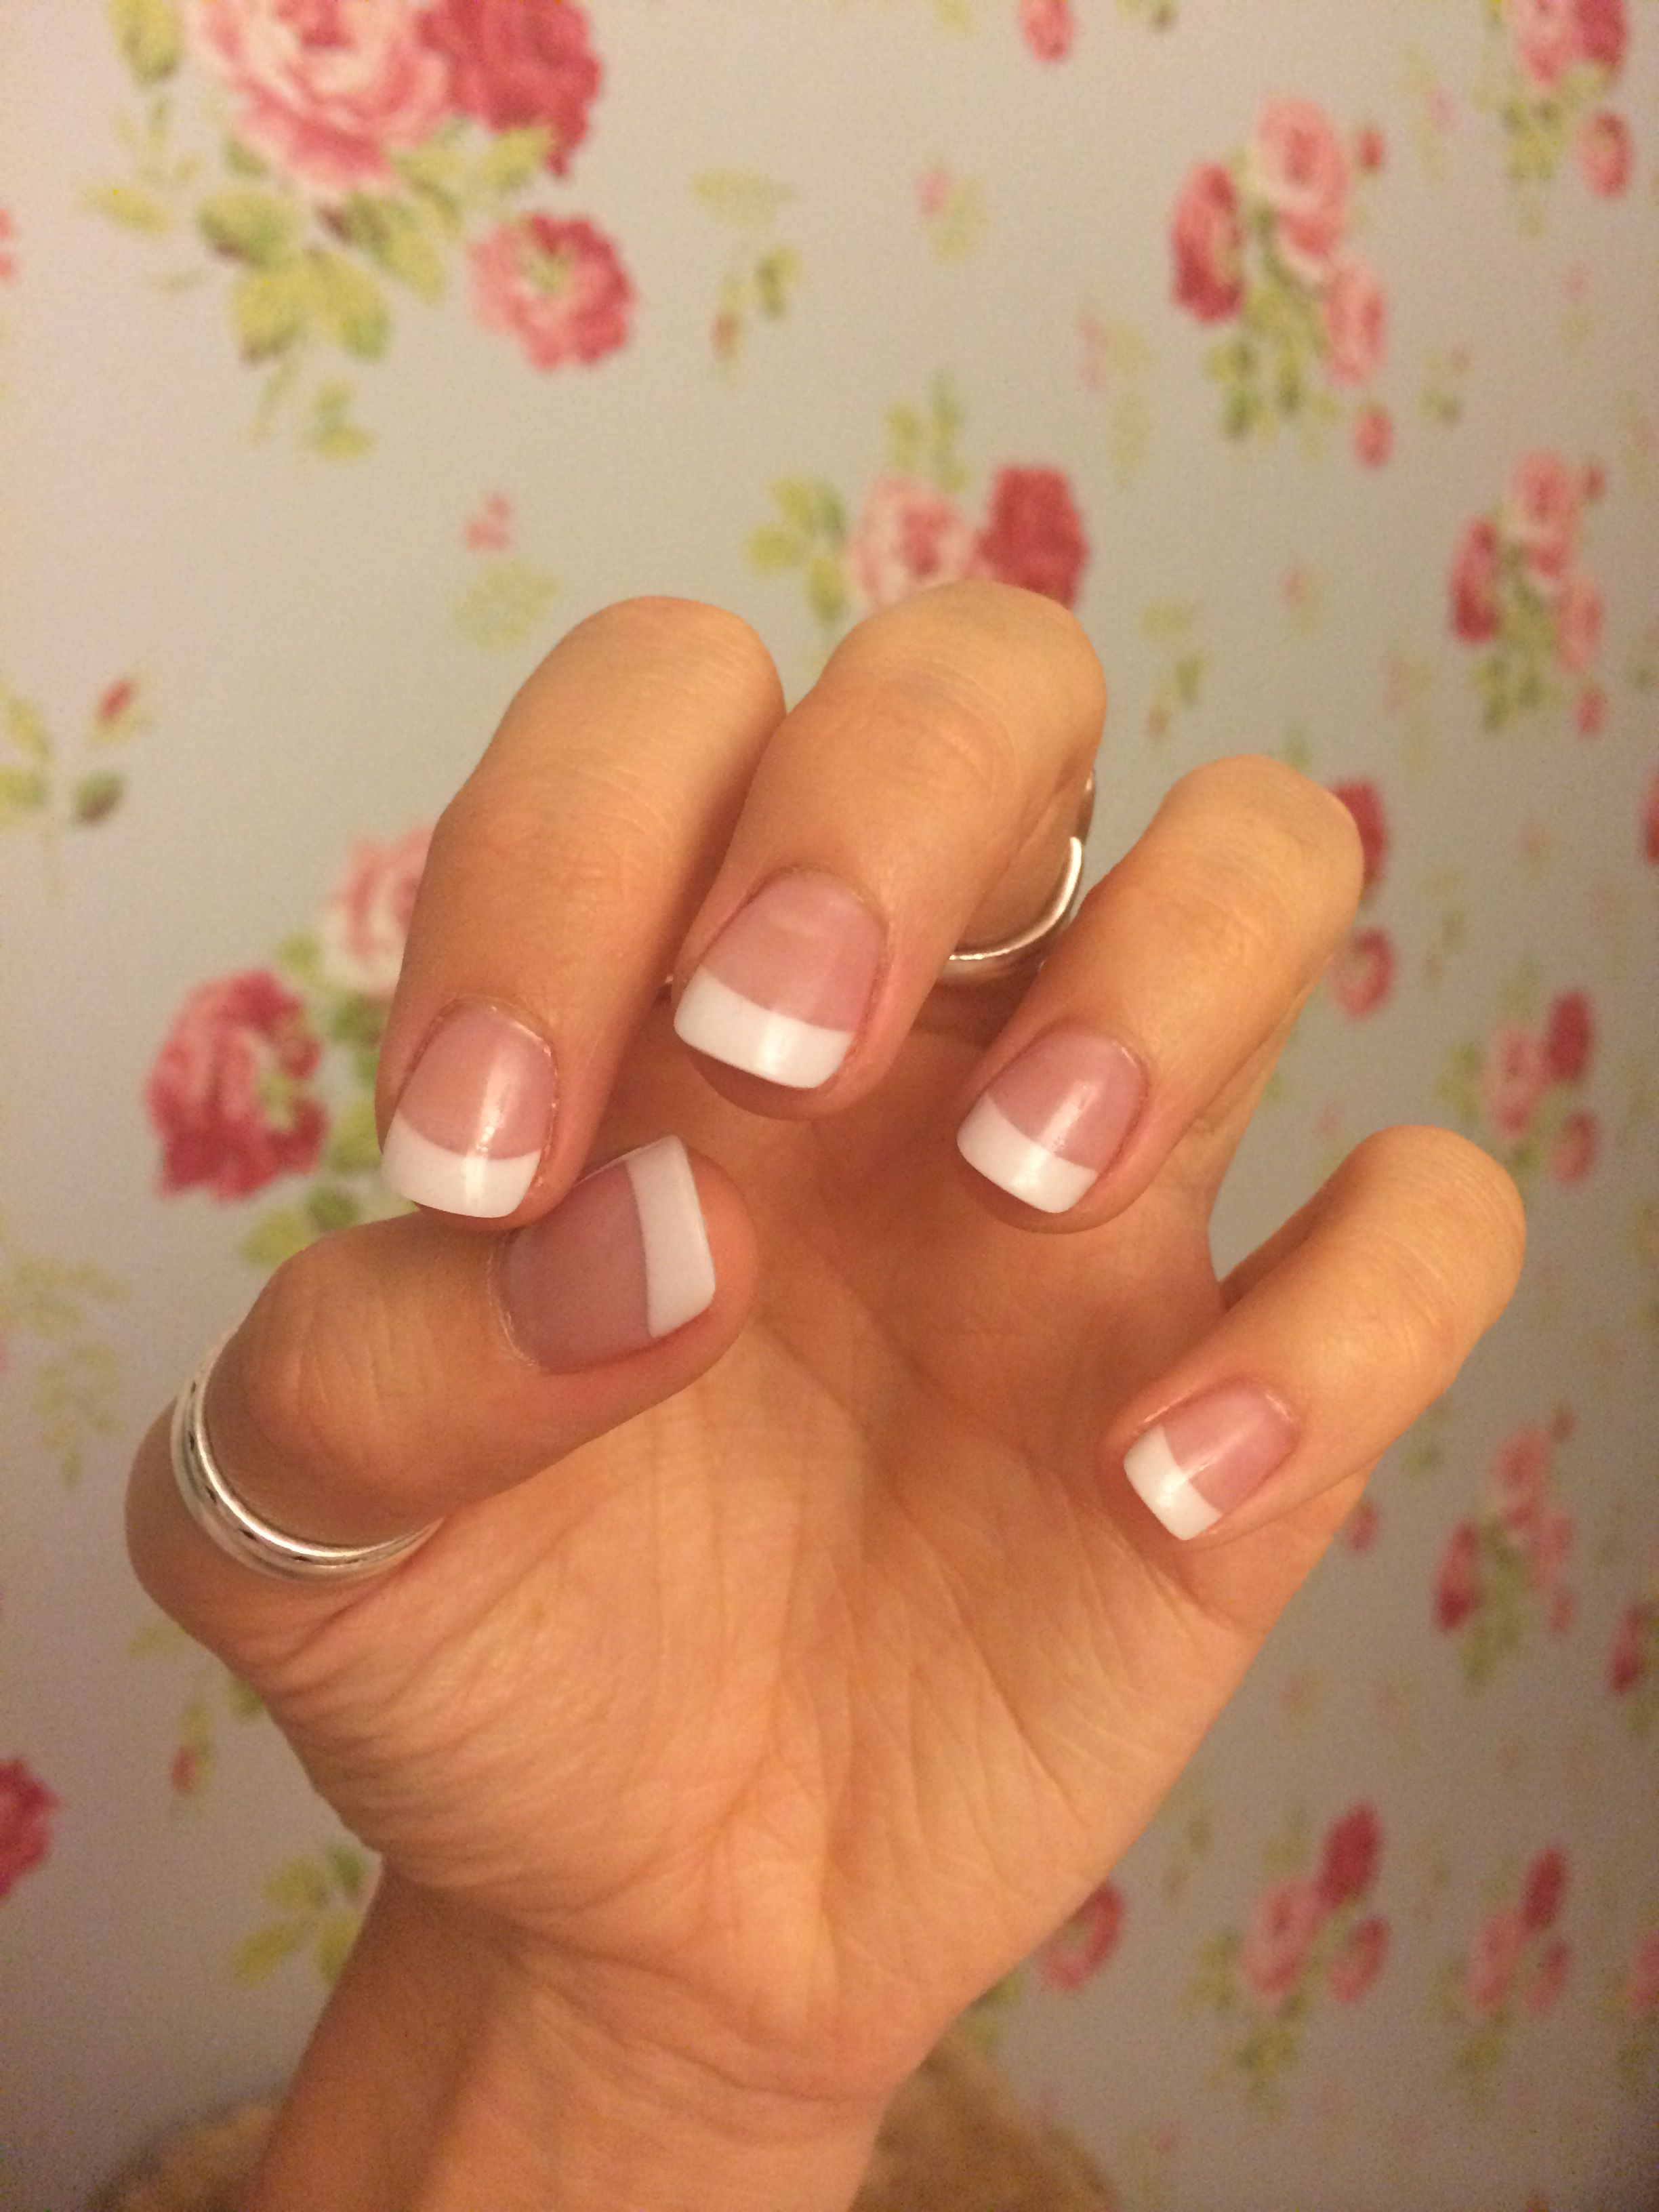 Pink And White Acrylic Nails Natural White Tip I Like This Shape And Length Very Natural Looking P White Acrylic Nails Trendy Nails White Tip Acrylic Nails